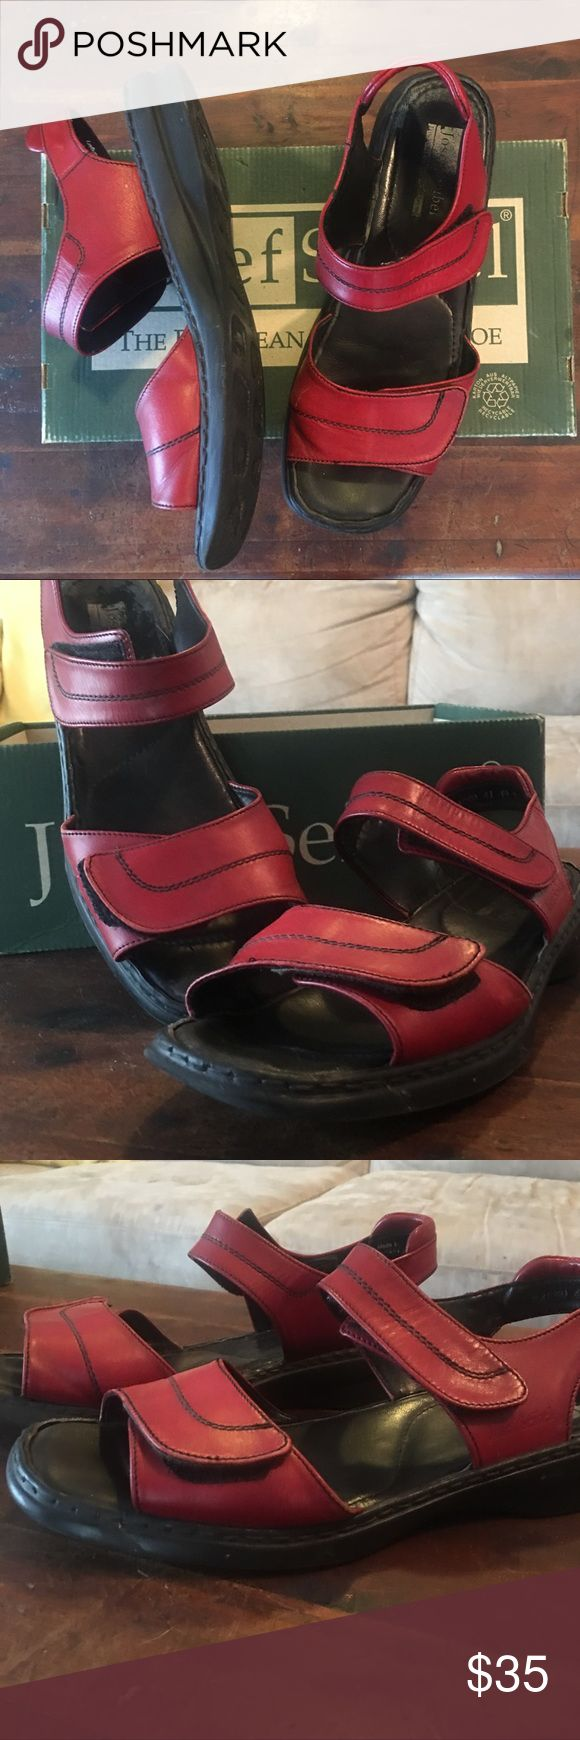 Josef Seibel Sandals in excellent used condition!✨ The European Comfort Shoe is amazing and so comfortable! These are very gently used and have so much life left in them! Josef Seibel Shoes Sandals